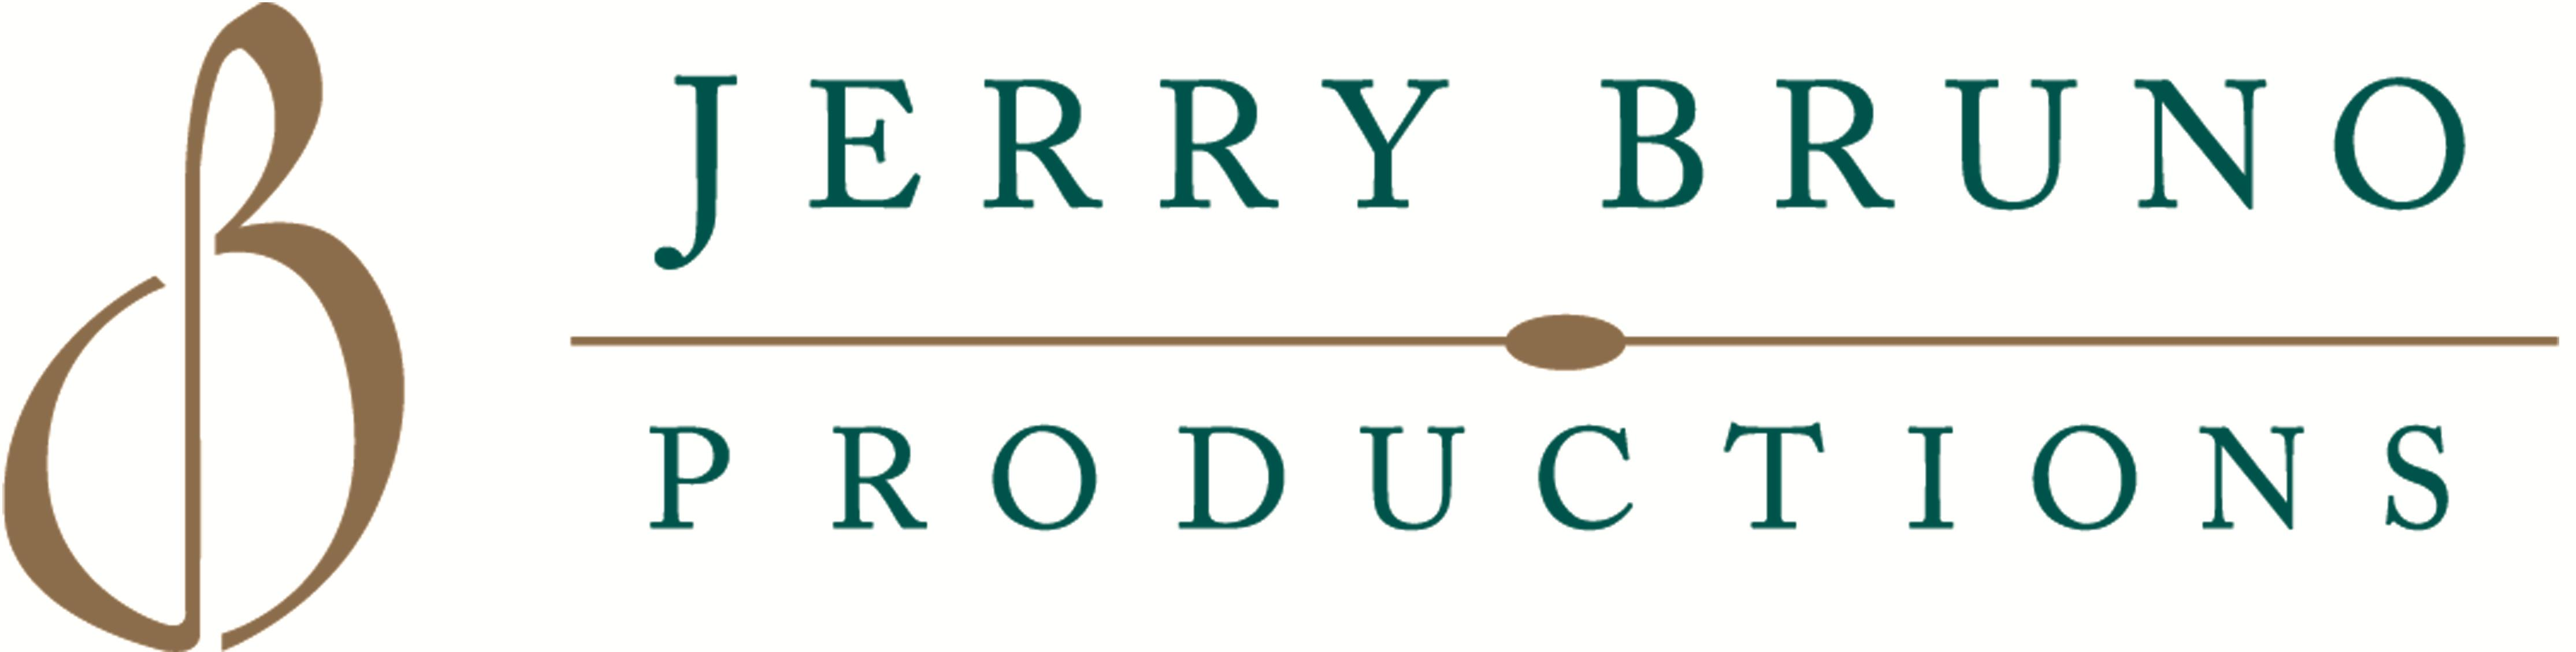 Jerry Bruno Productions